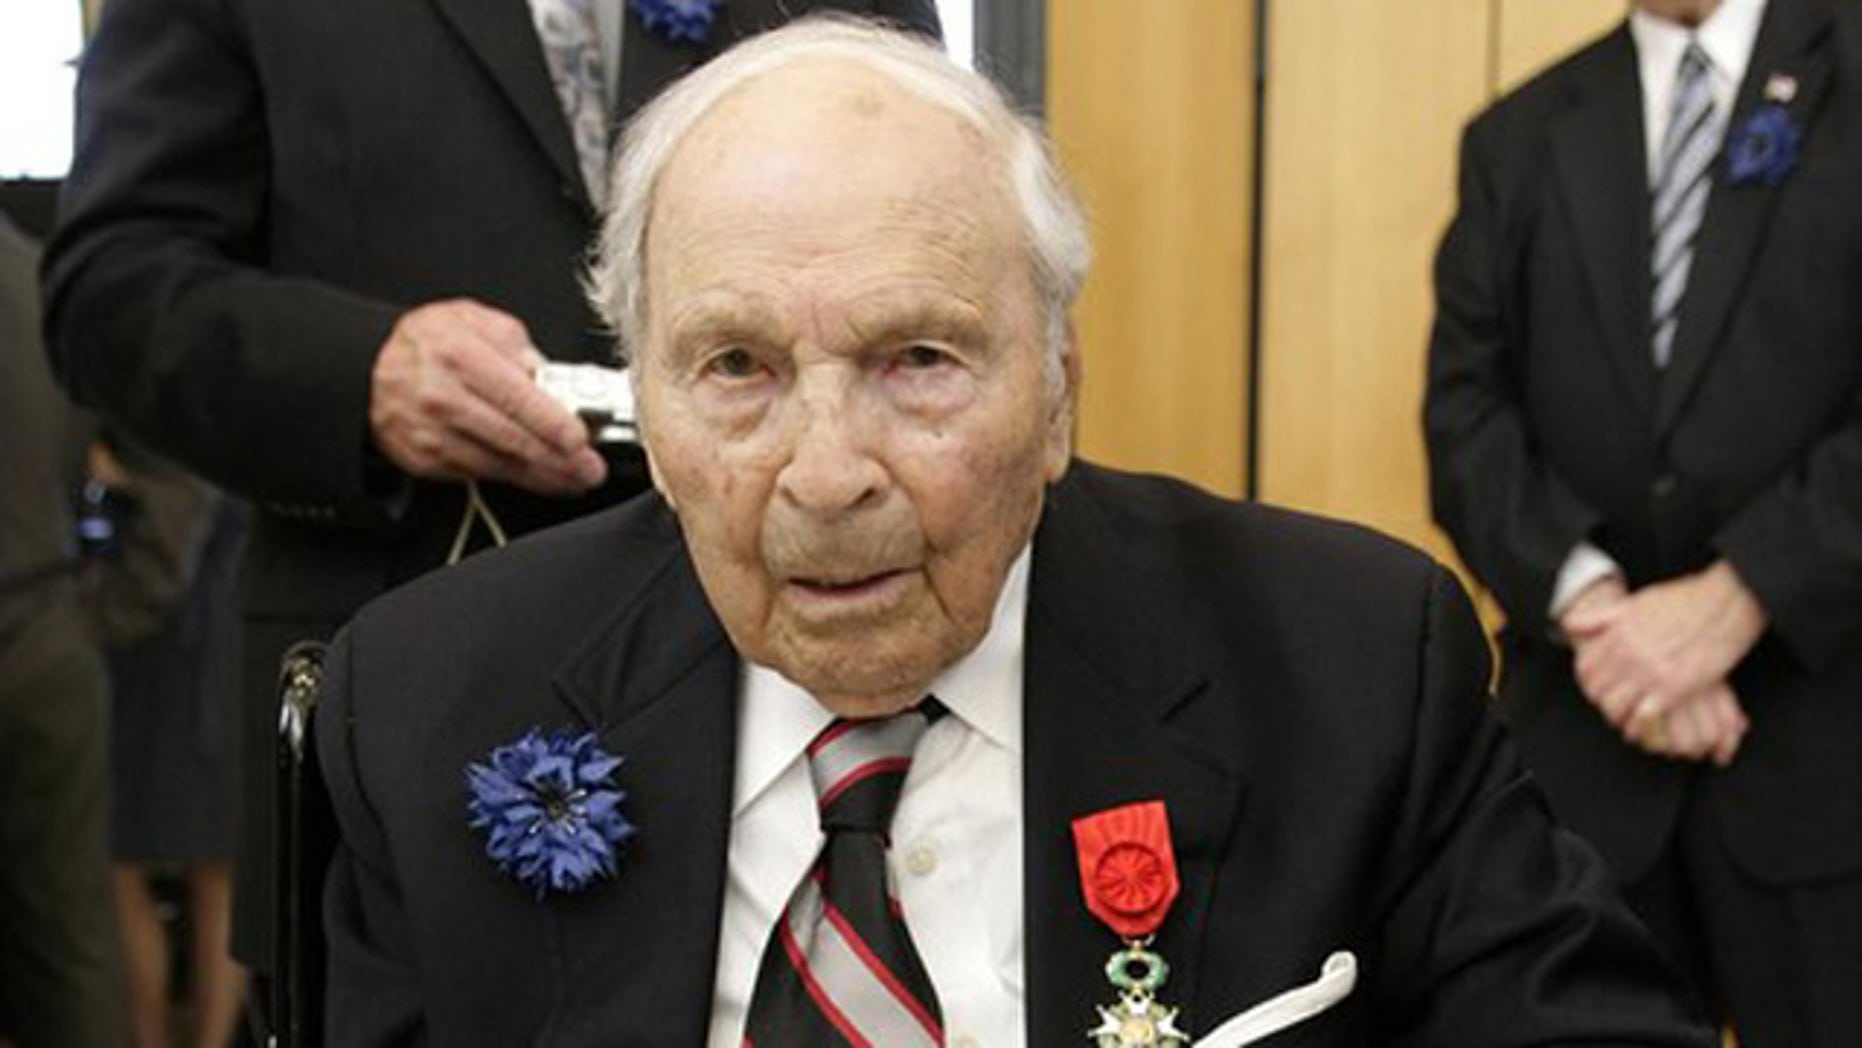 Frank Buckles, then 107, a U.S. veteran of First World War combat in France, signs a World War One era ambulance corps helmet after receiving the Legion of Honor at the French Embassy in Washington in this file image from October 7, 2008.